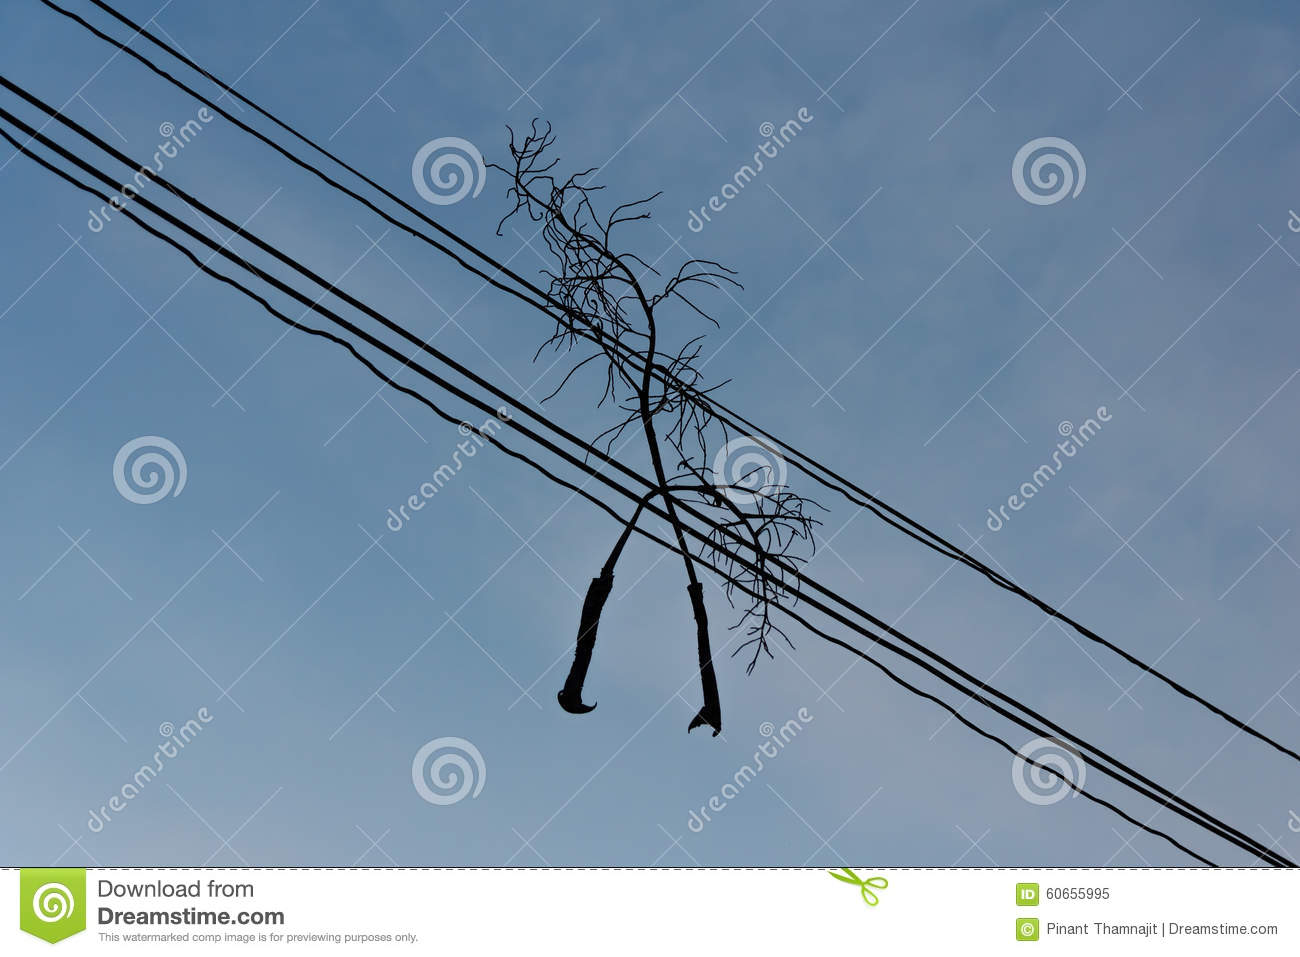 Silhouette View Of Dead Branch On The Electric Wire. Stock Image ...